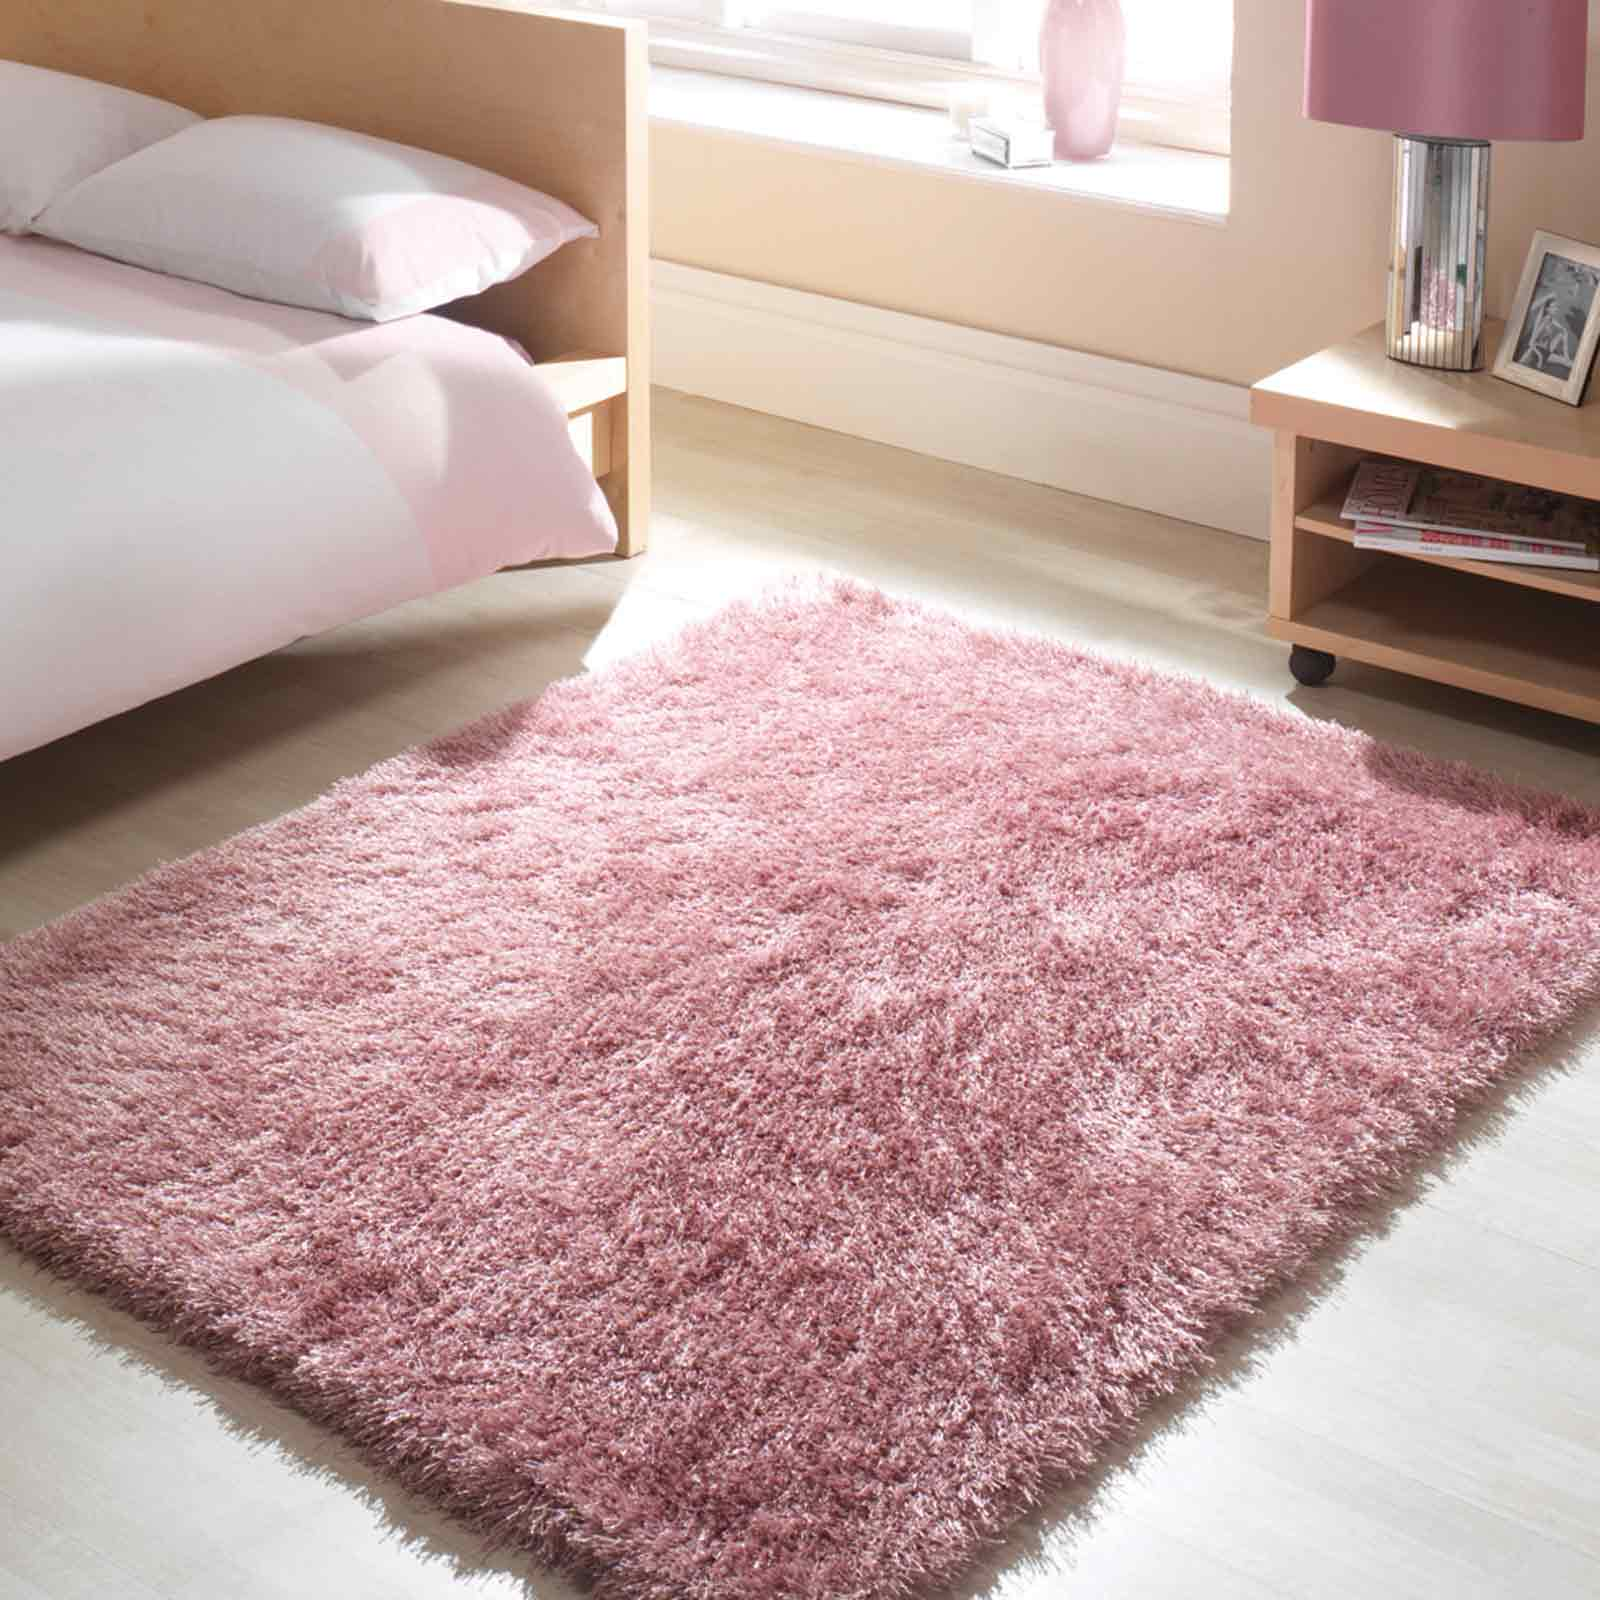 Santa Cruz Summertime Shaggy Rugs in Crushed Strawberry Pink